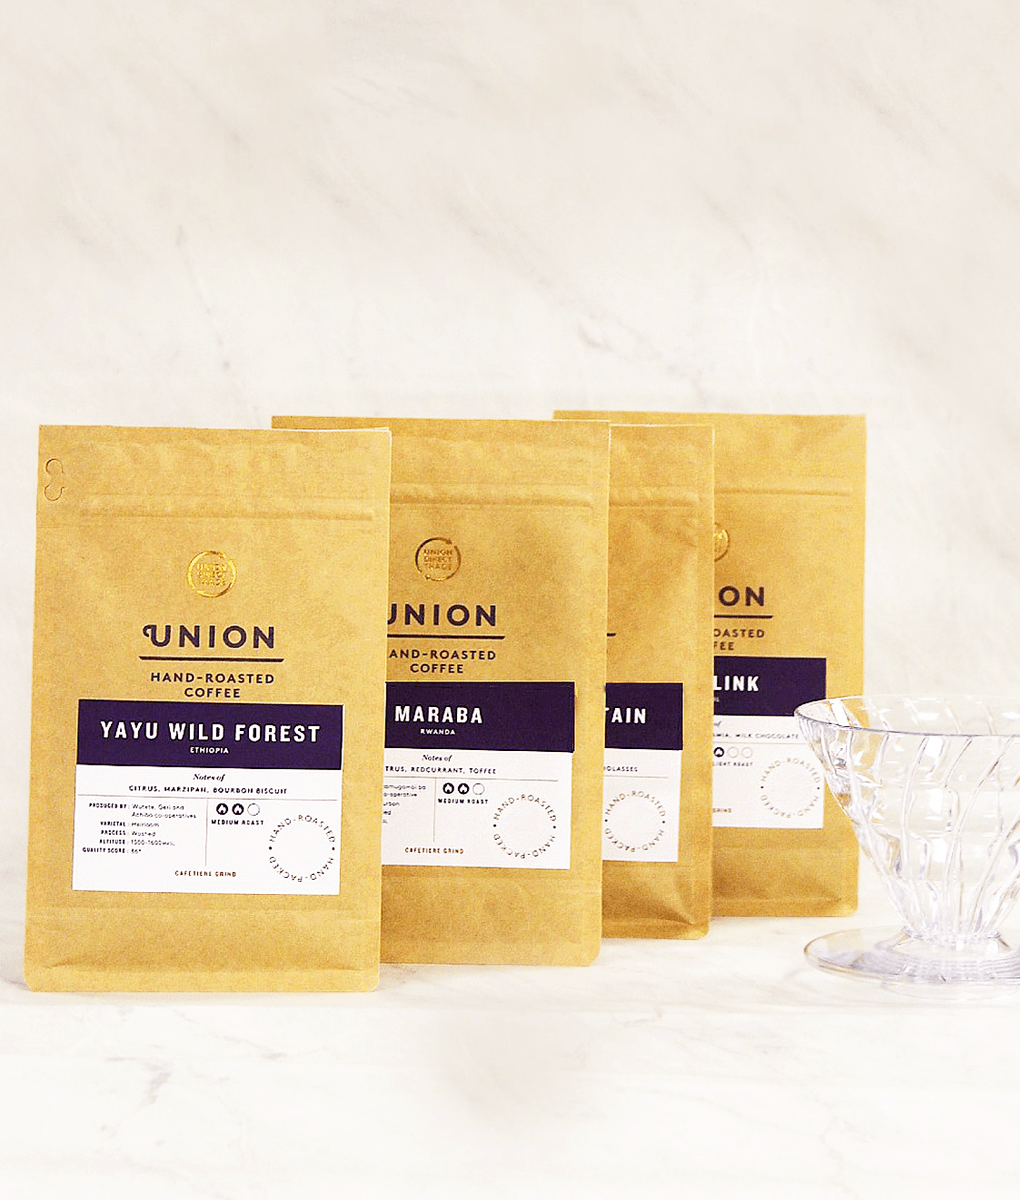 Image: Around the World Bundle, With Free V60 Filter Brewer